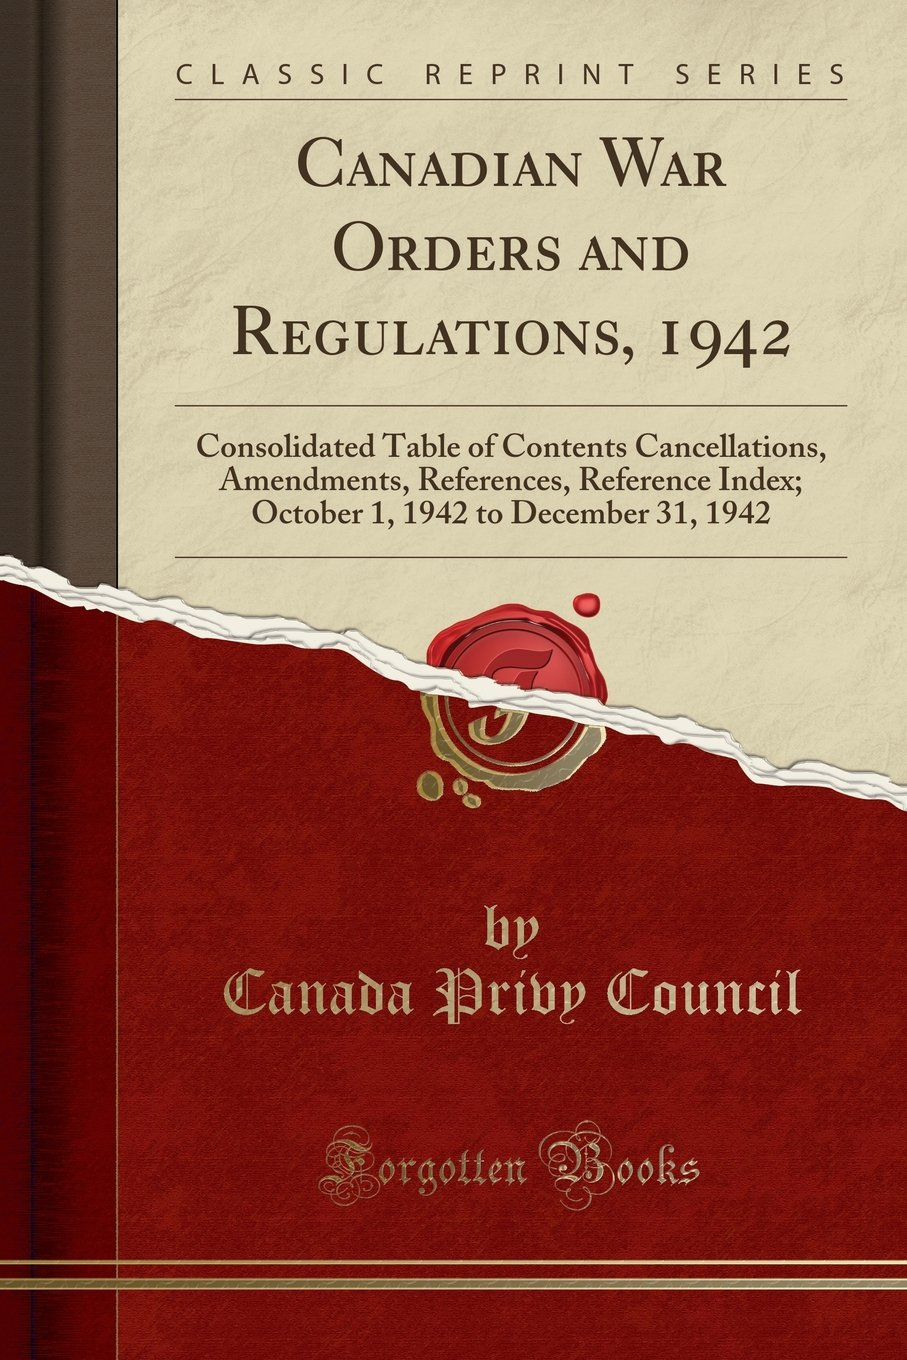 Canadian War Orders and Regulations, 1942: Consolidated Table of Contents Cancellations, Amendments, References, Reference Index; October 1, 1942 to December 31, 1942 (Classic Reprint) pdf